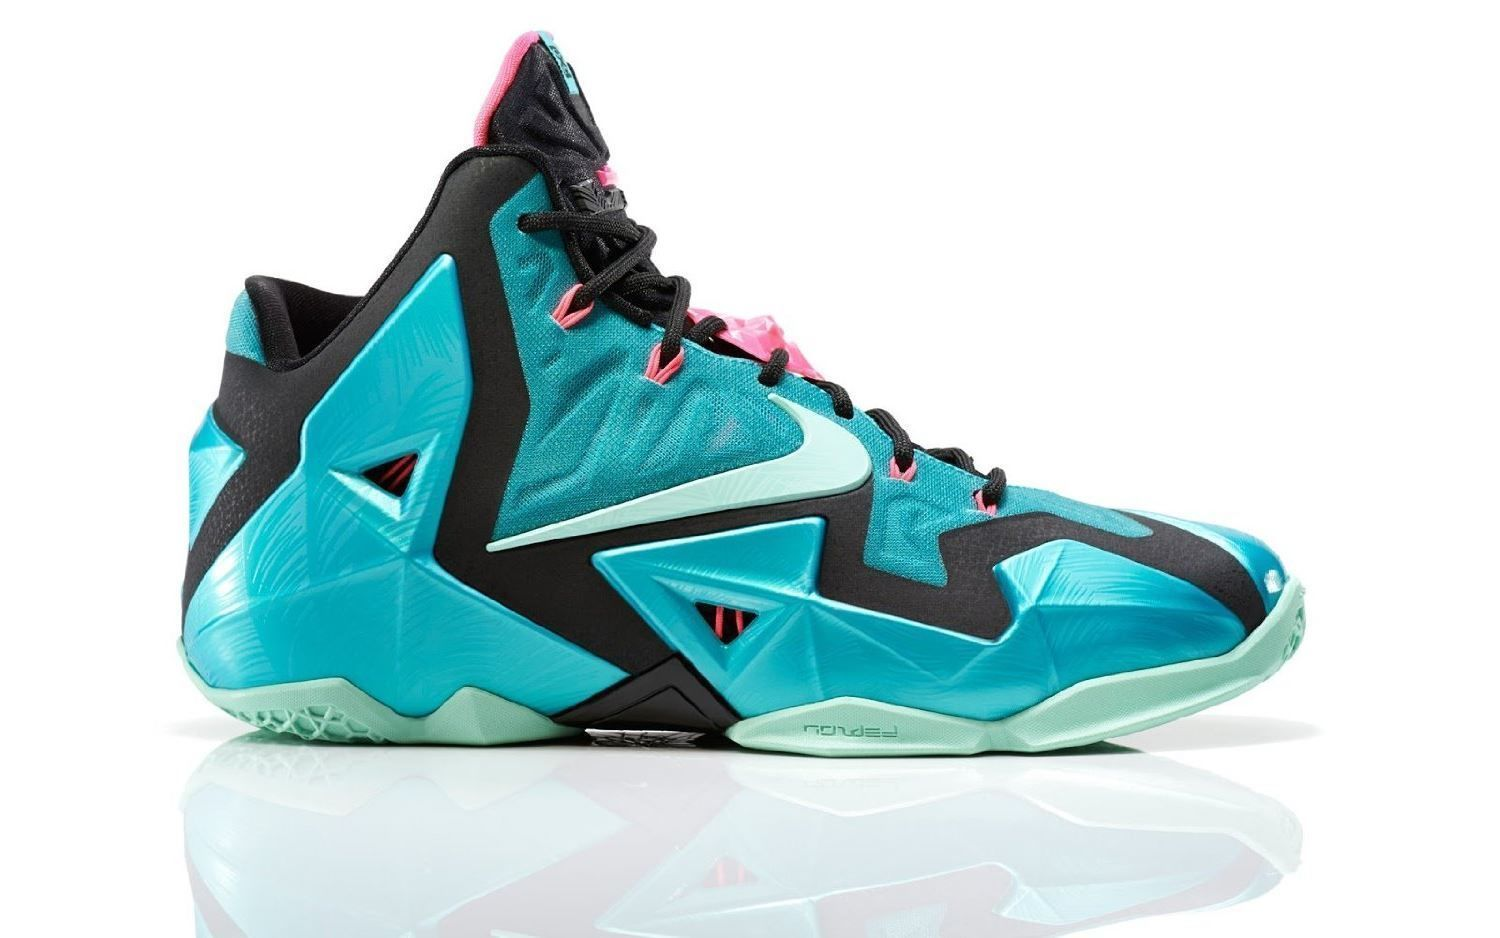 Top 10 Coolest Basketball Shoes